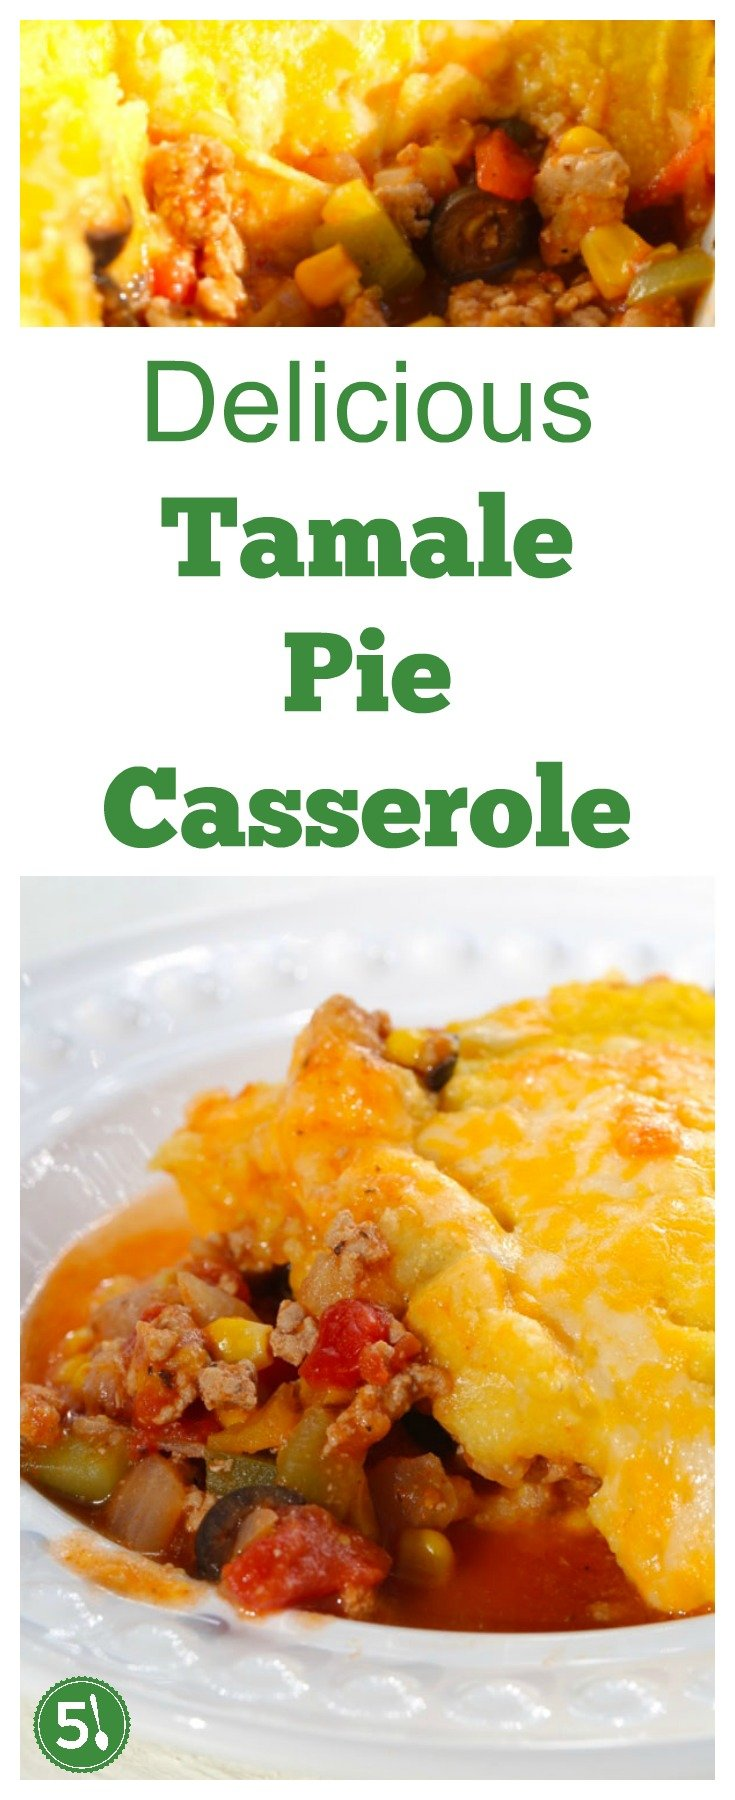 Tamale pie casserole recipe with ground beef or turkey covered in cornmeal topping is one of my favorite comfort foods.